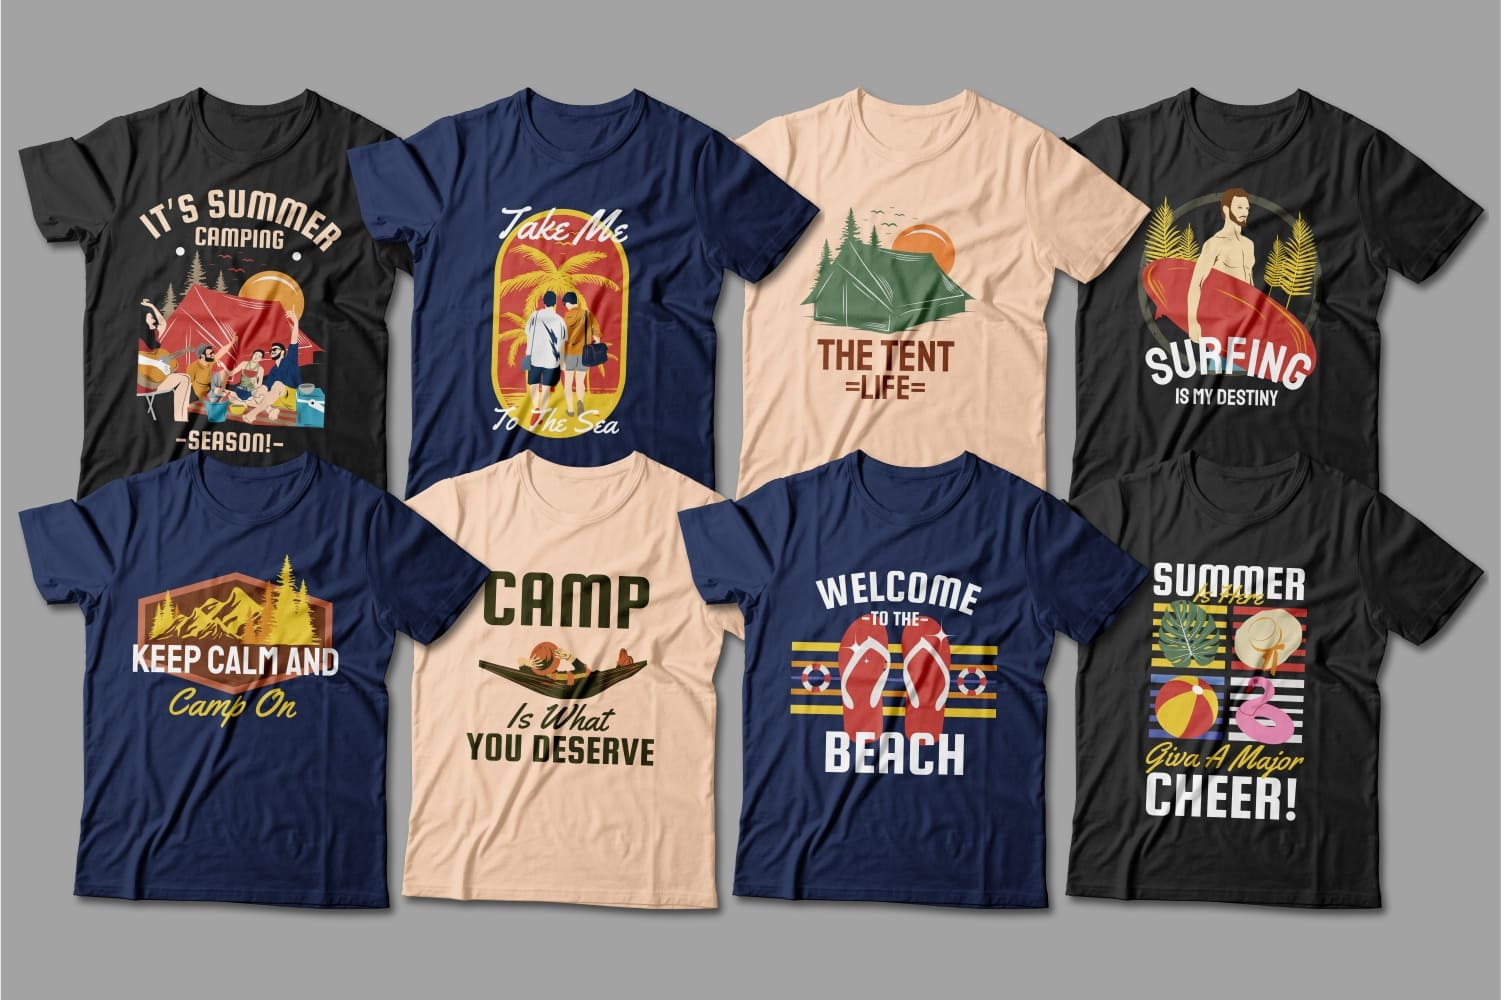 Summer T-shirts in three colors featuring outdoor activities.